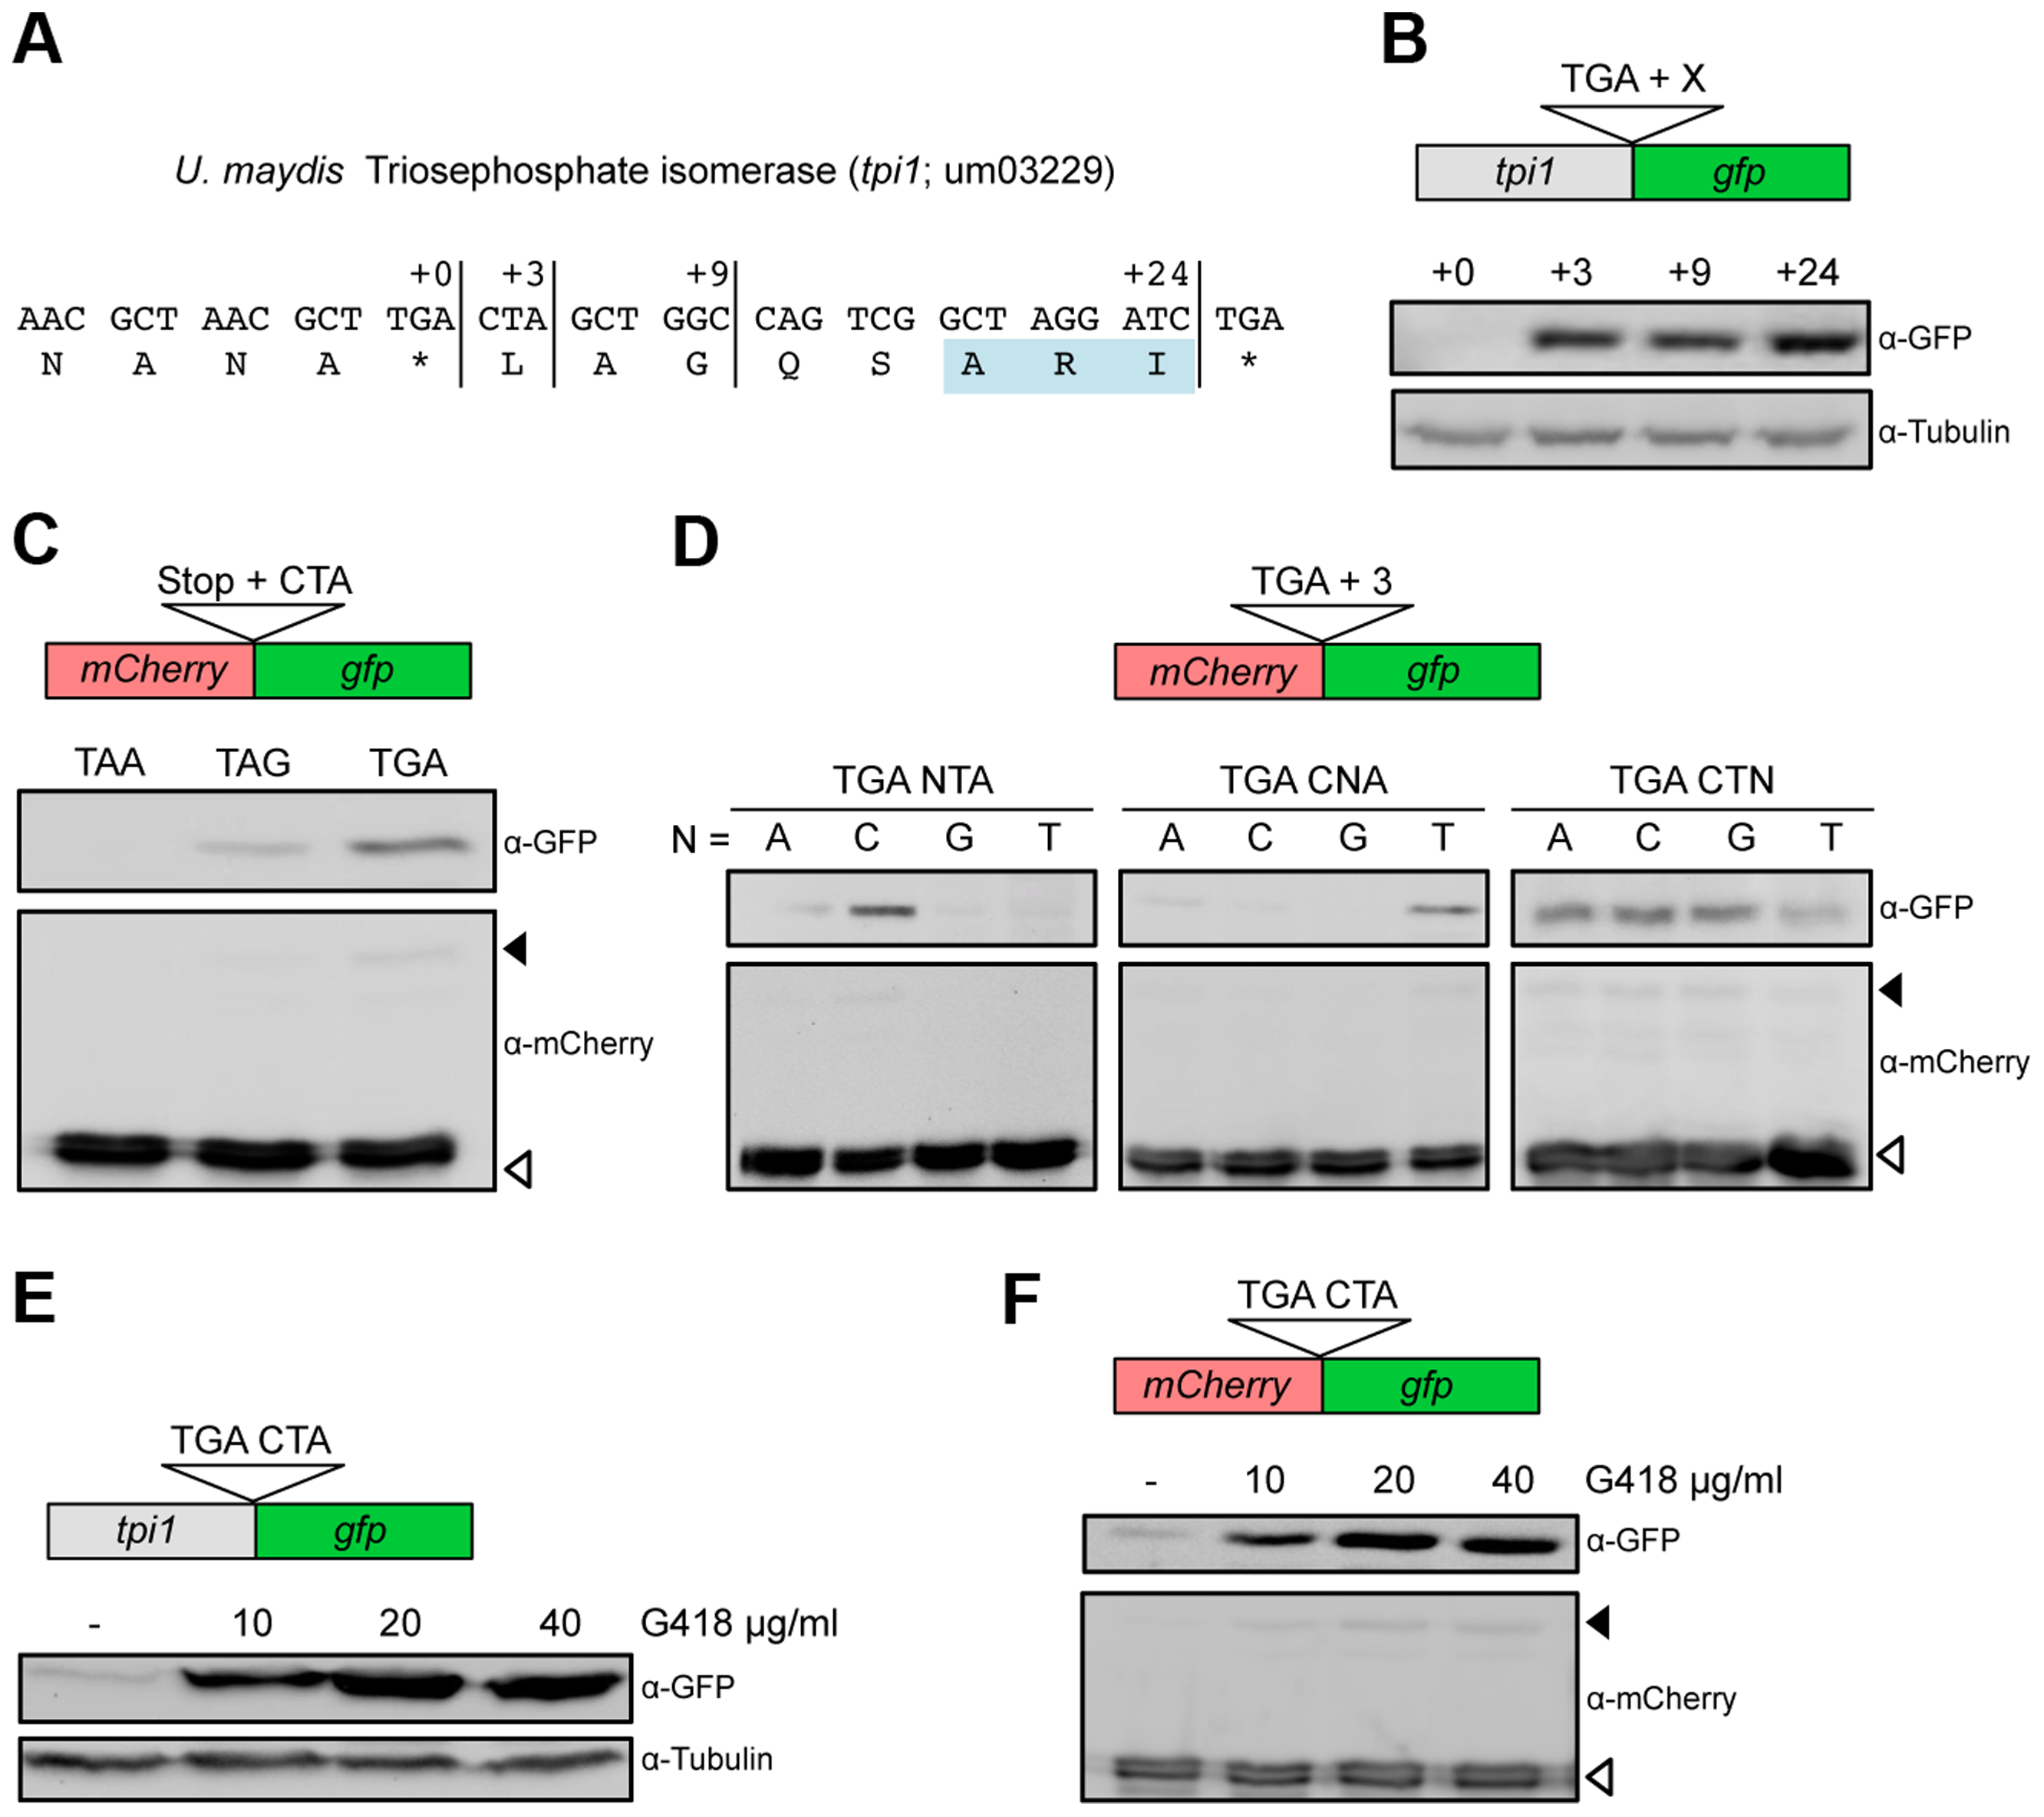 Characterization of sequence requirements for translational readthrough in <i>U. maydis</i>.